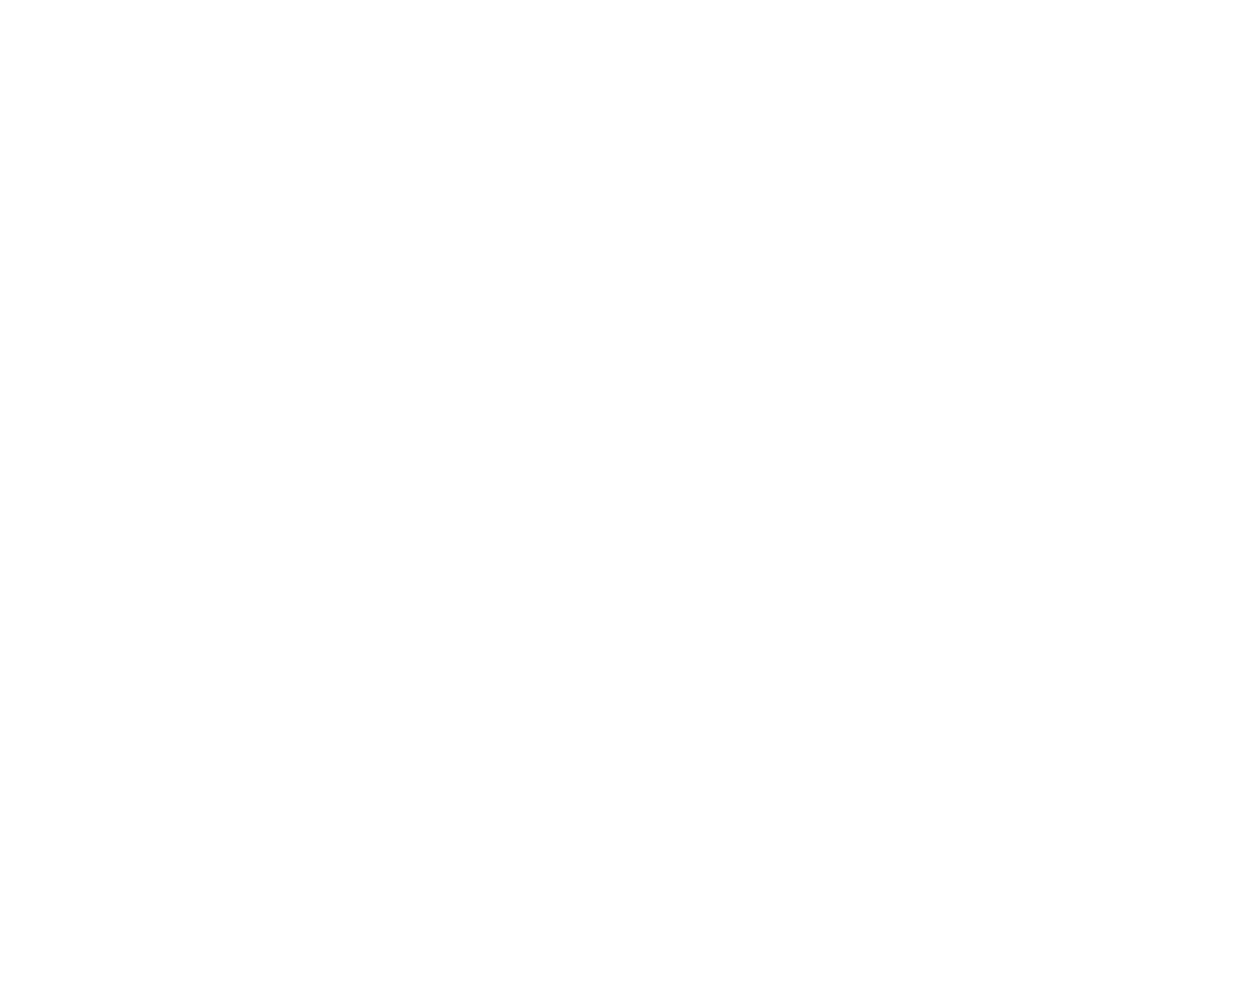 Continental Mid-town